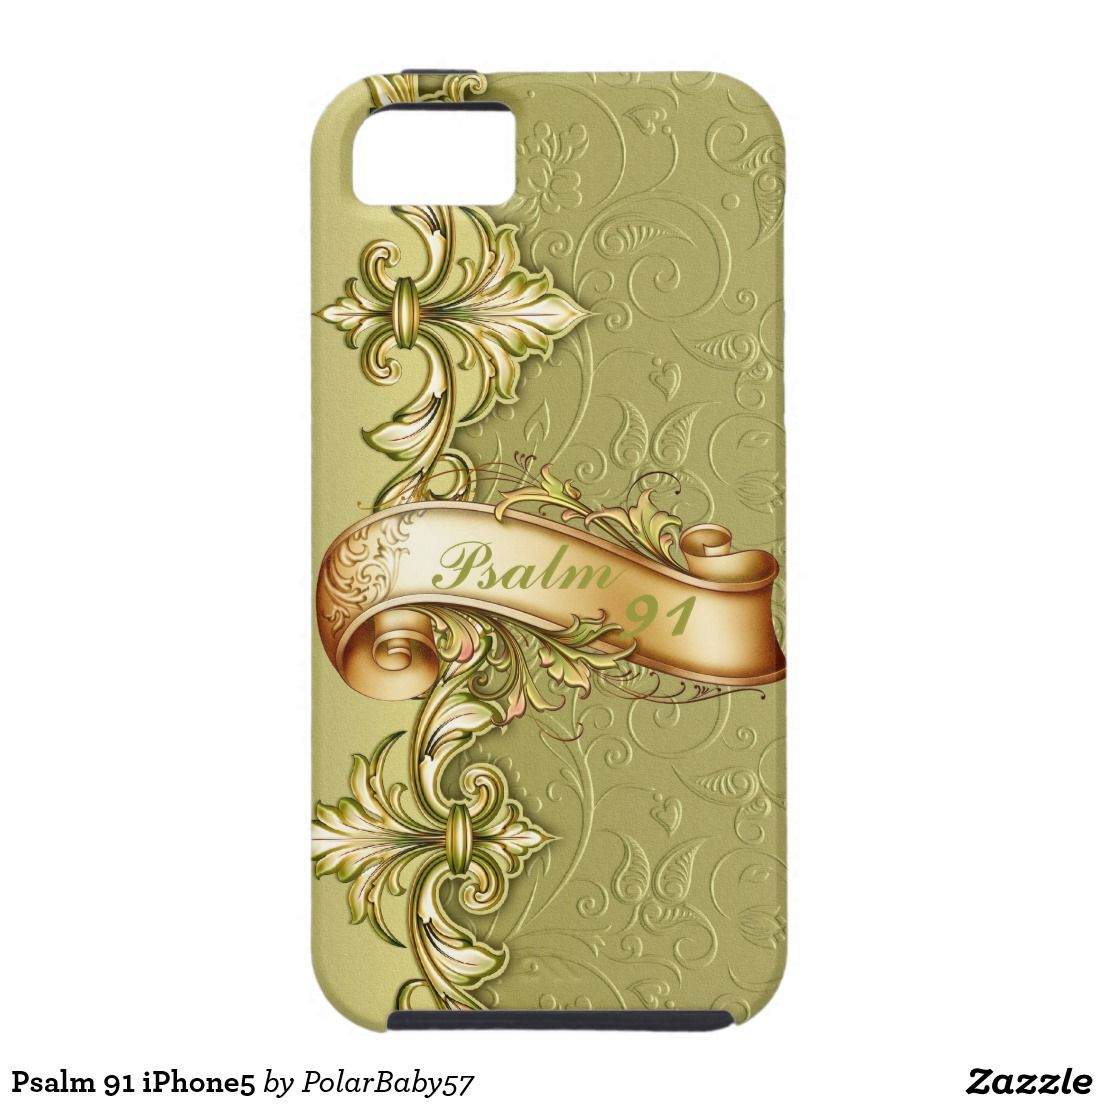 Psalm 91 iPhone5 iPhone 5 Case. I CAN CREATE THIS NDESIGN ON ANY CELL PHONE CASE